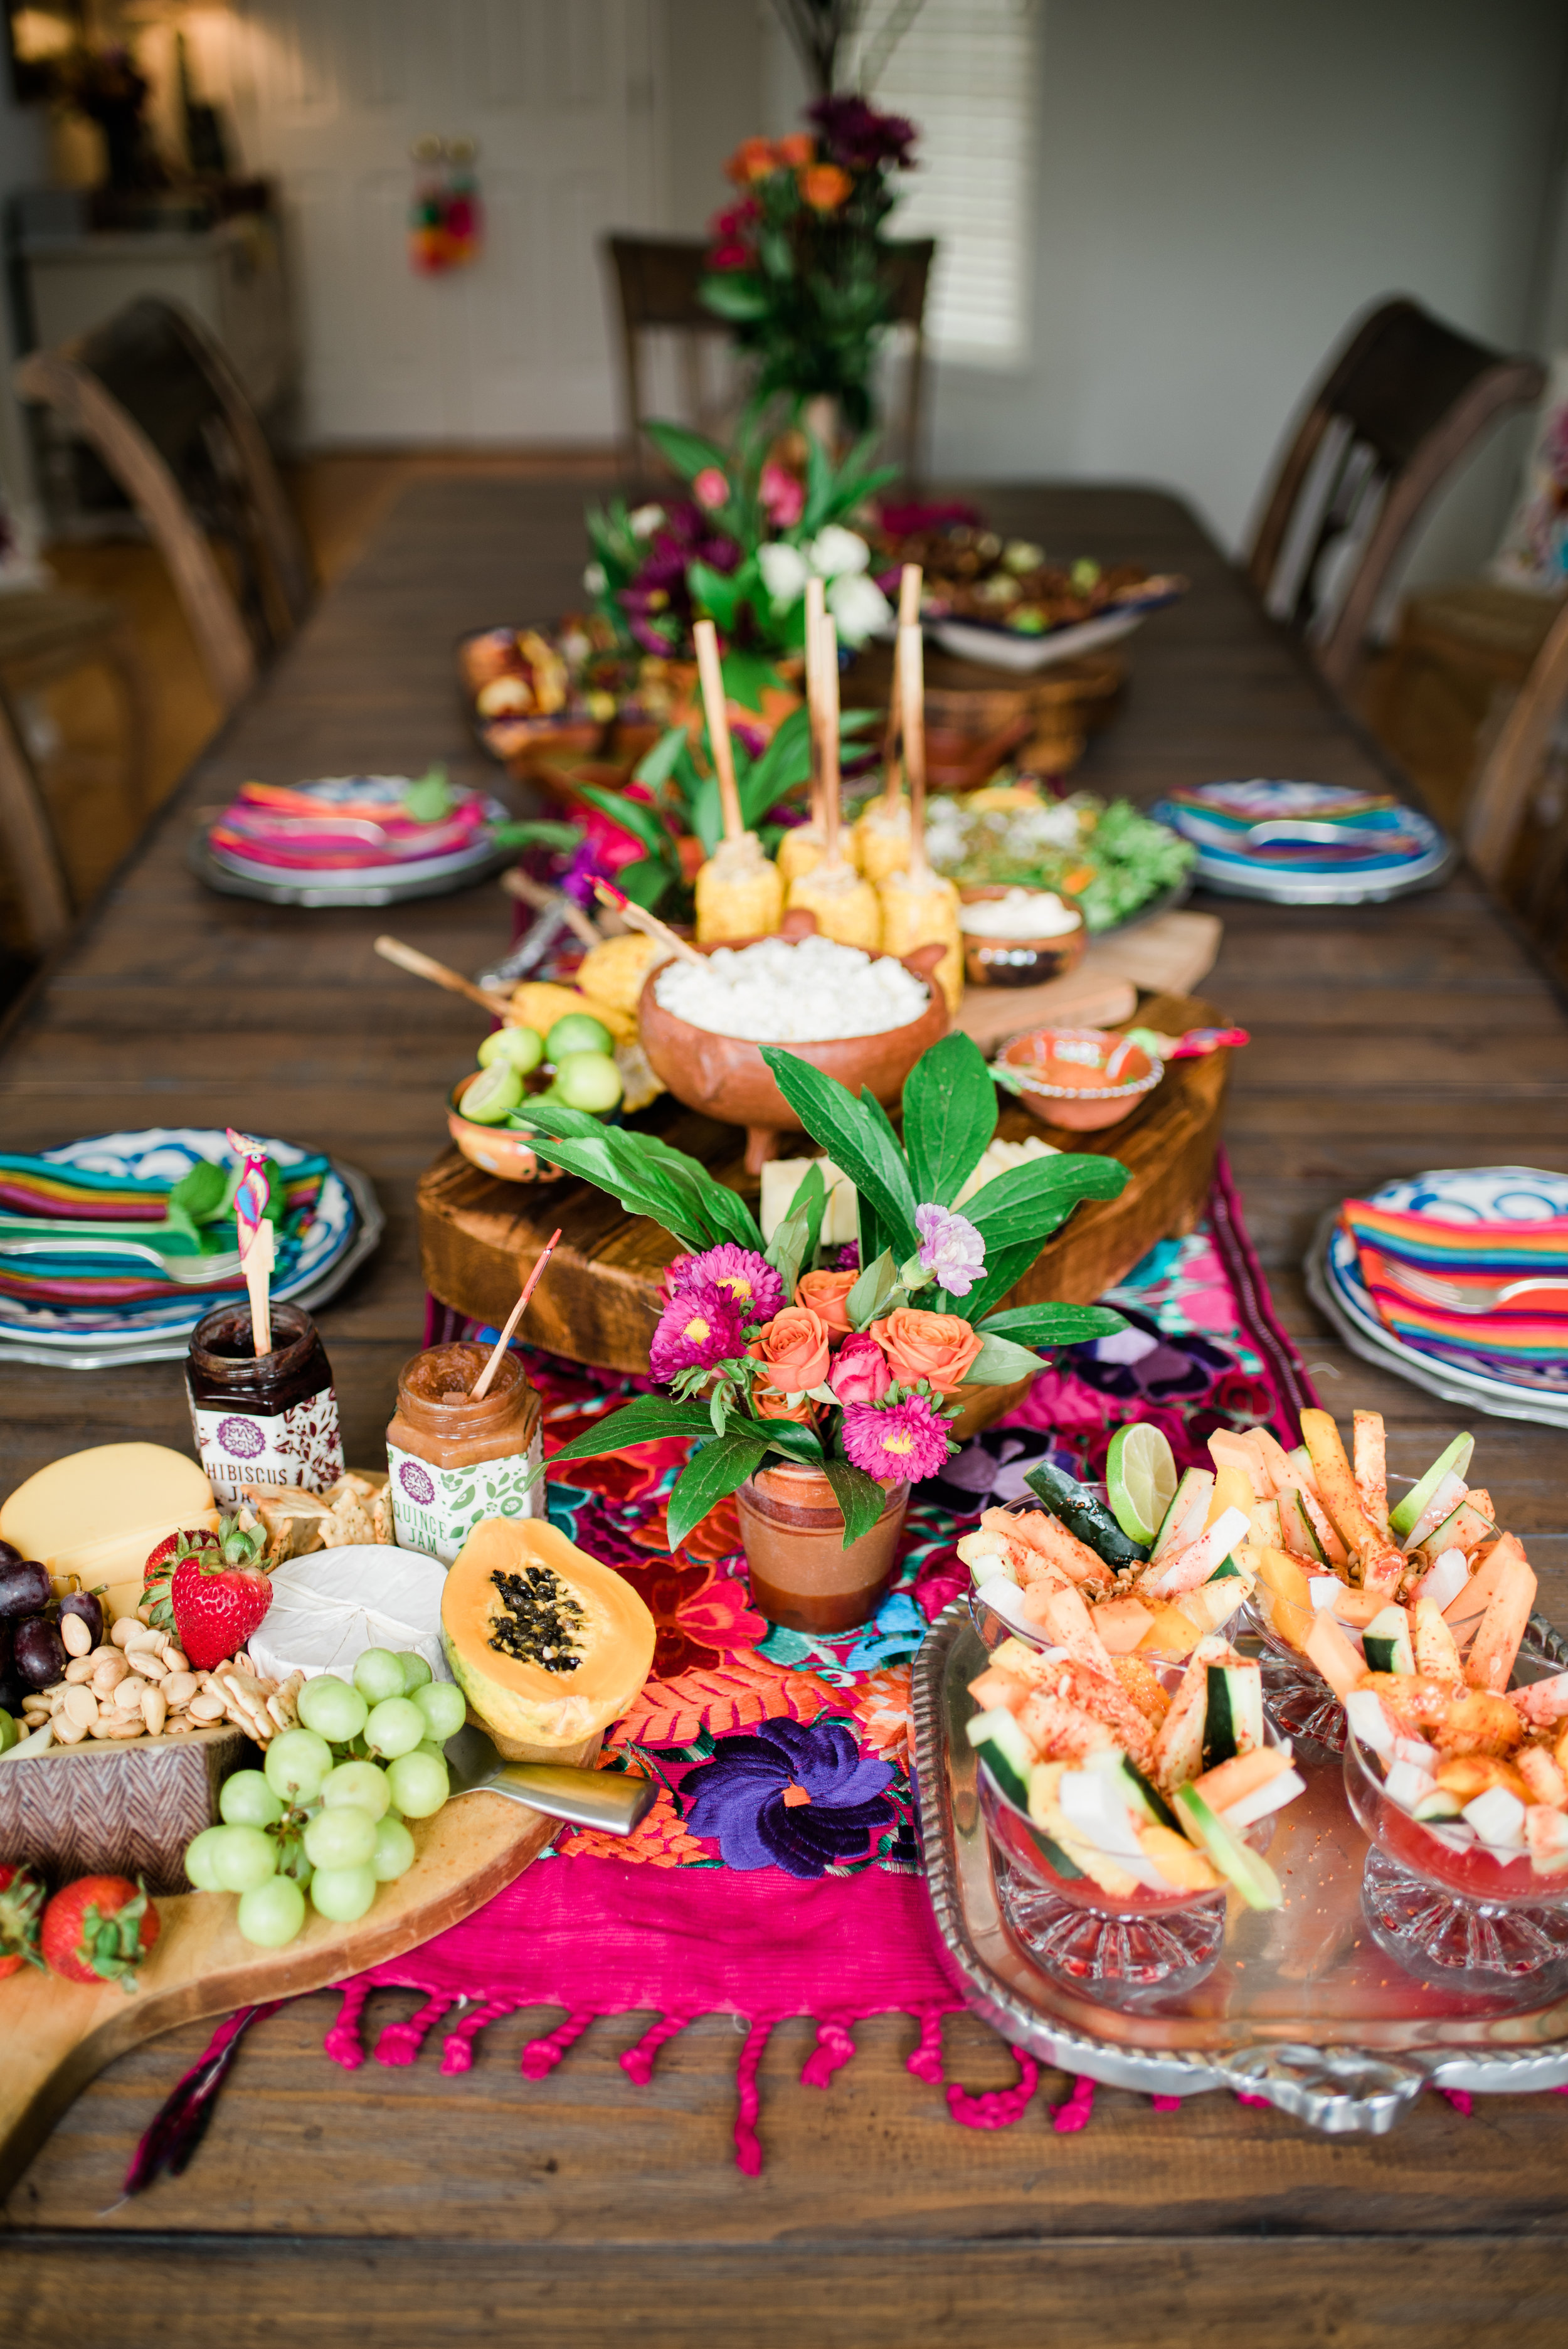 The food. The colors. The most beautiful table and spread I've ever seen!